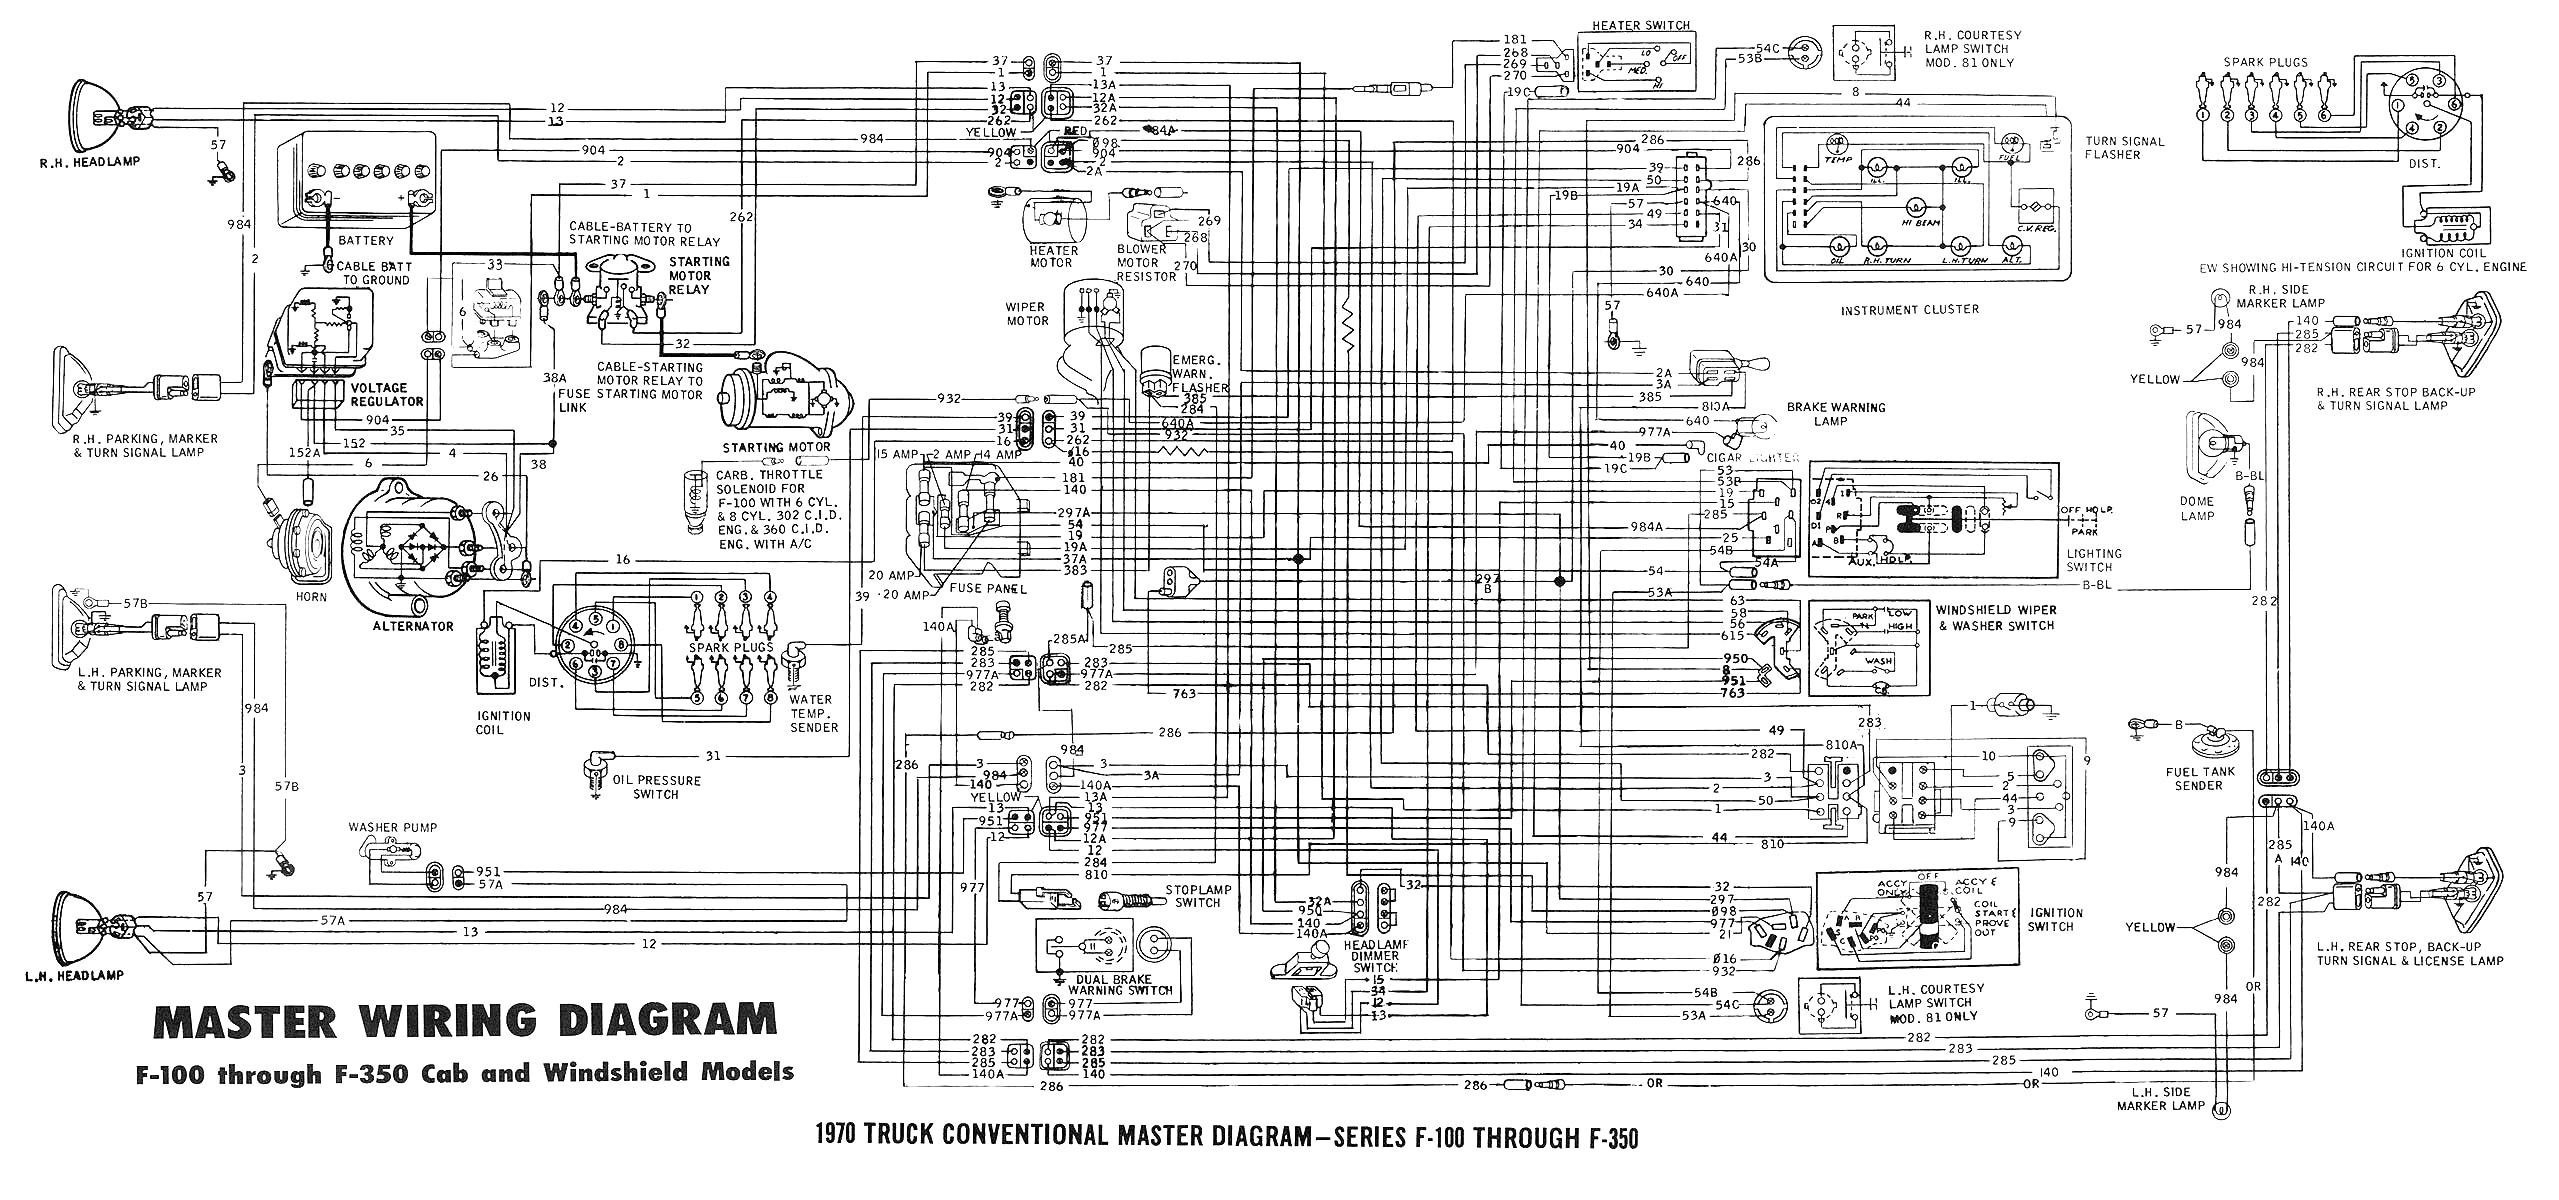 1973 Ford F250 Wiring Diagram Online  U2013 Wires  U0026 Decors